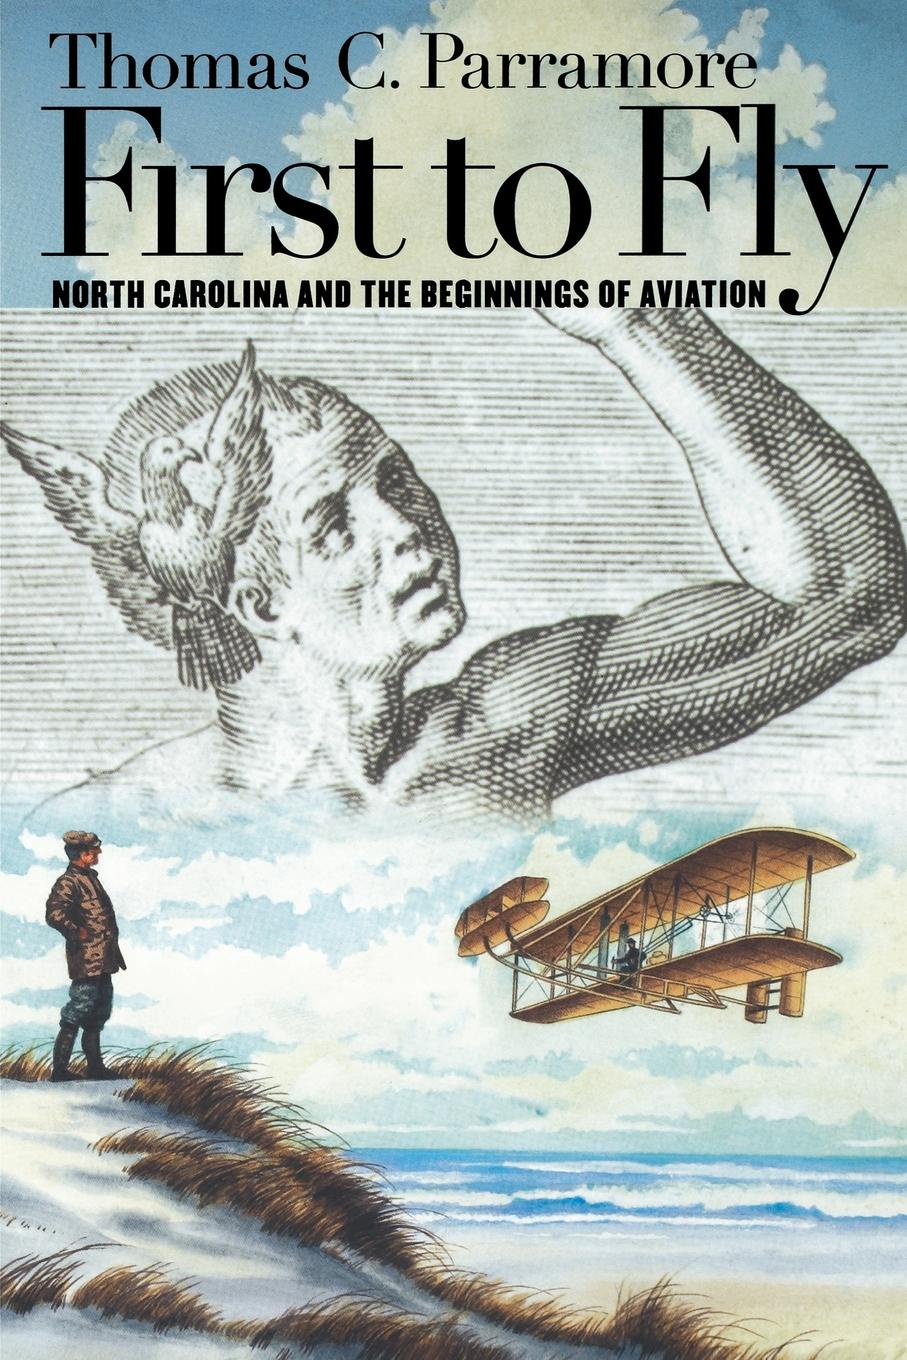 Thomas C. Parramore First to Fly. North Carolina and the Beginnings of Aviation